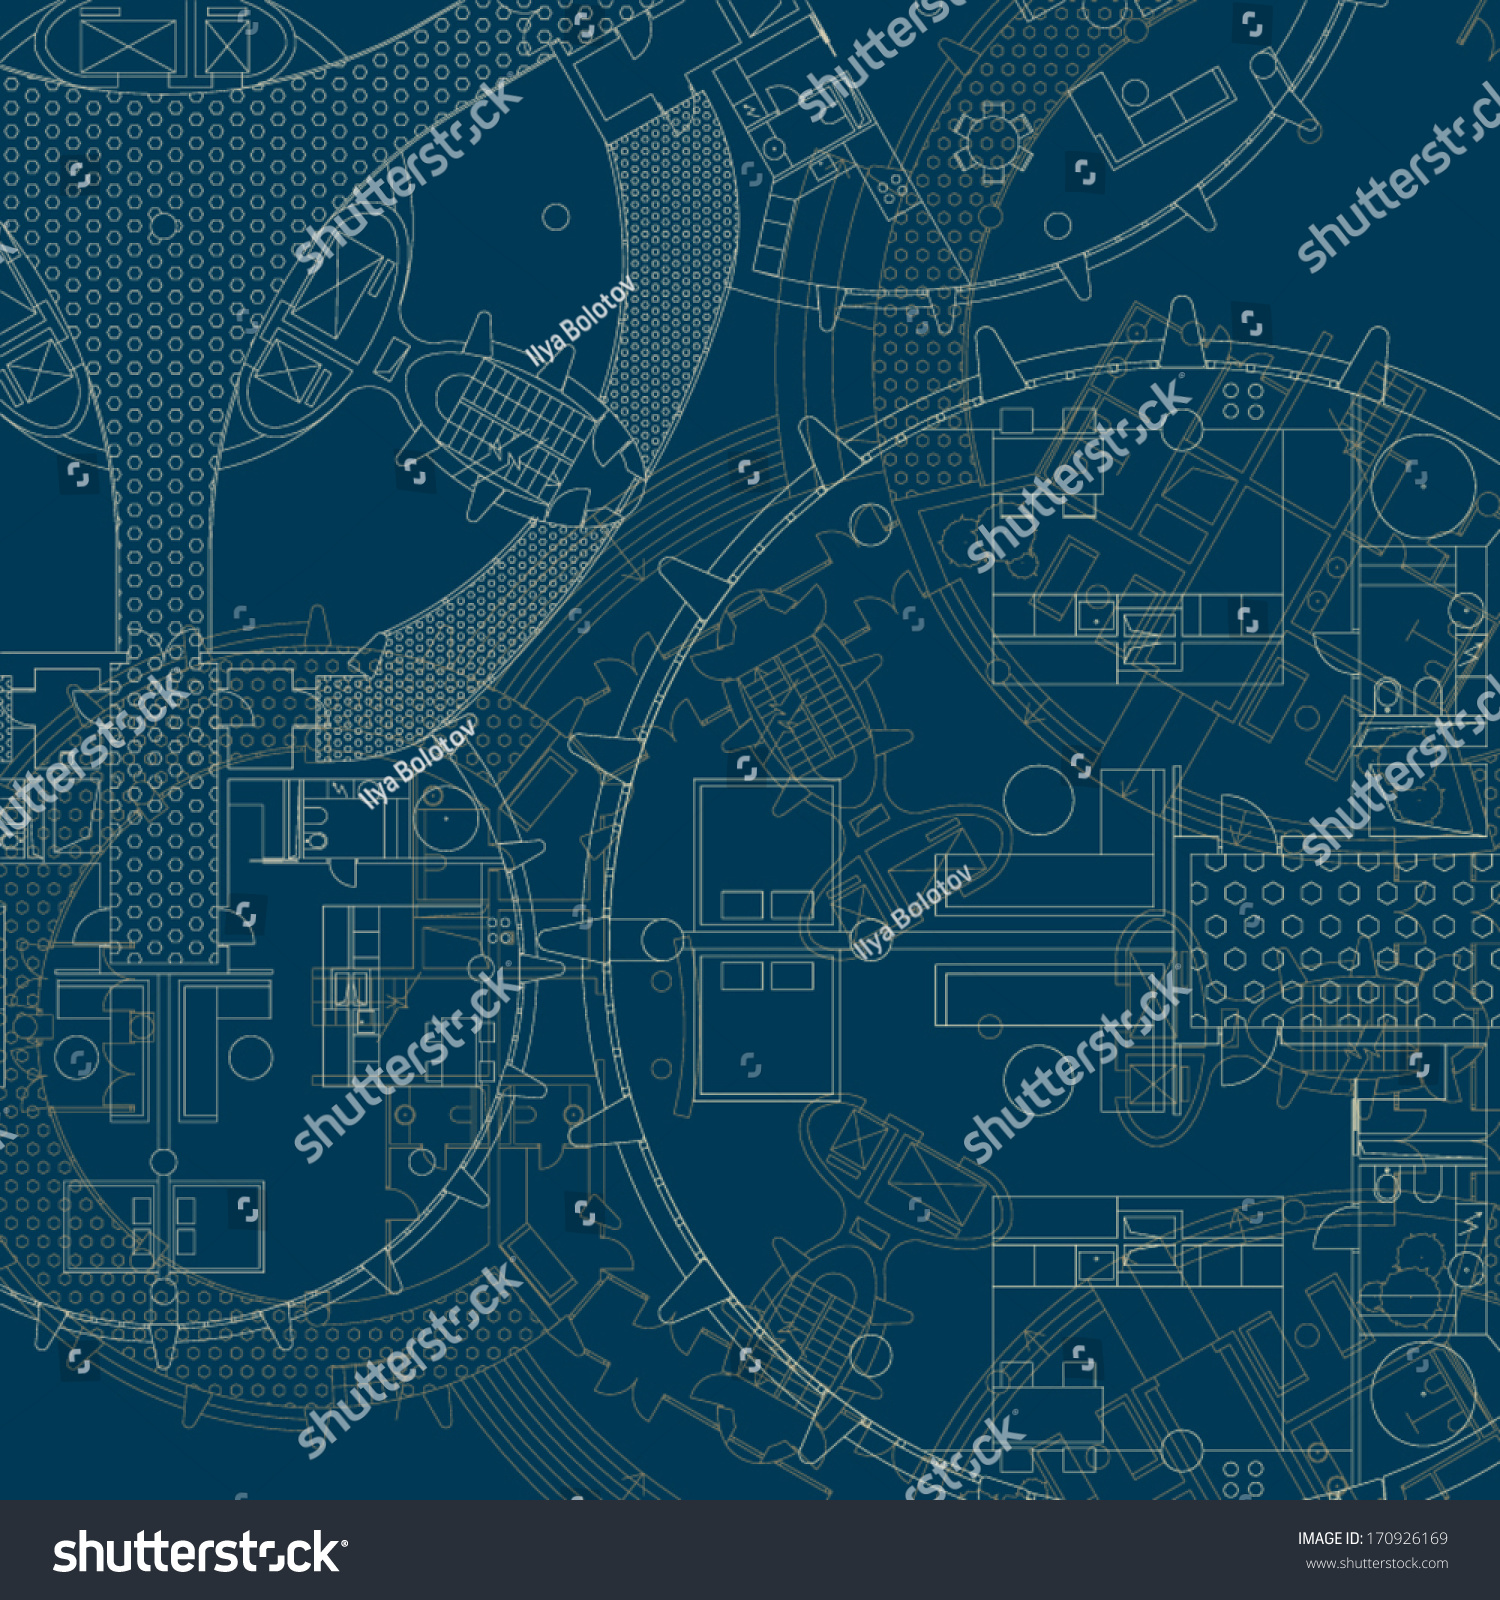 Architectural blueprint vector drawings stock vector 170926169 architectural blueprint vector drawings malvernweather Images